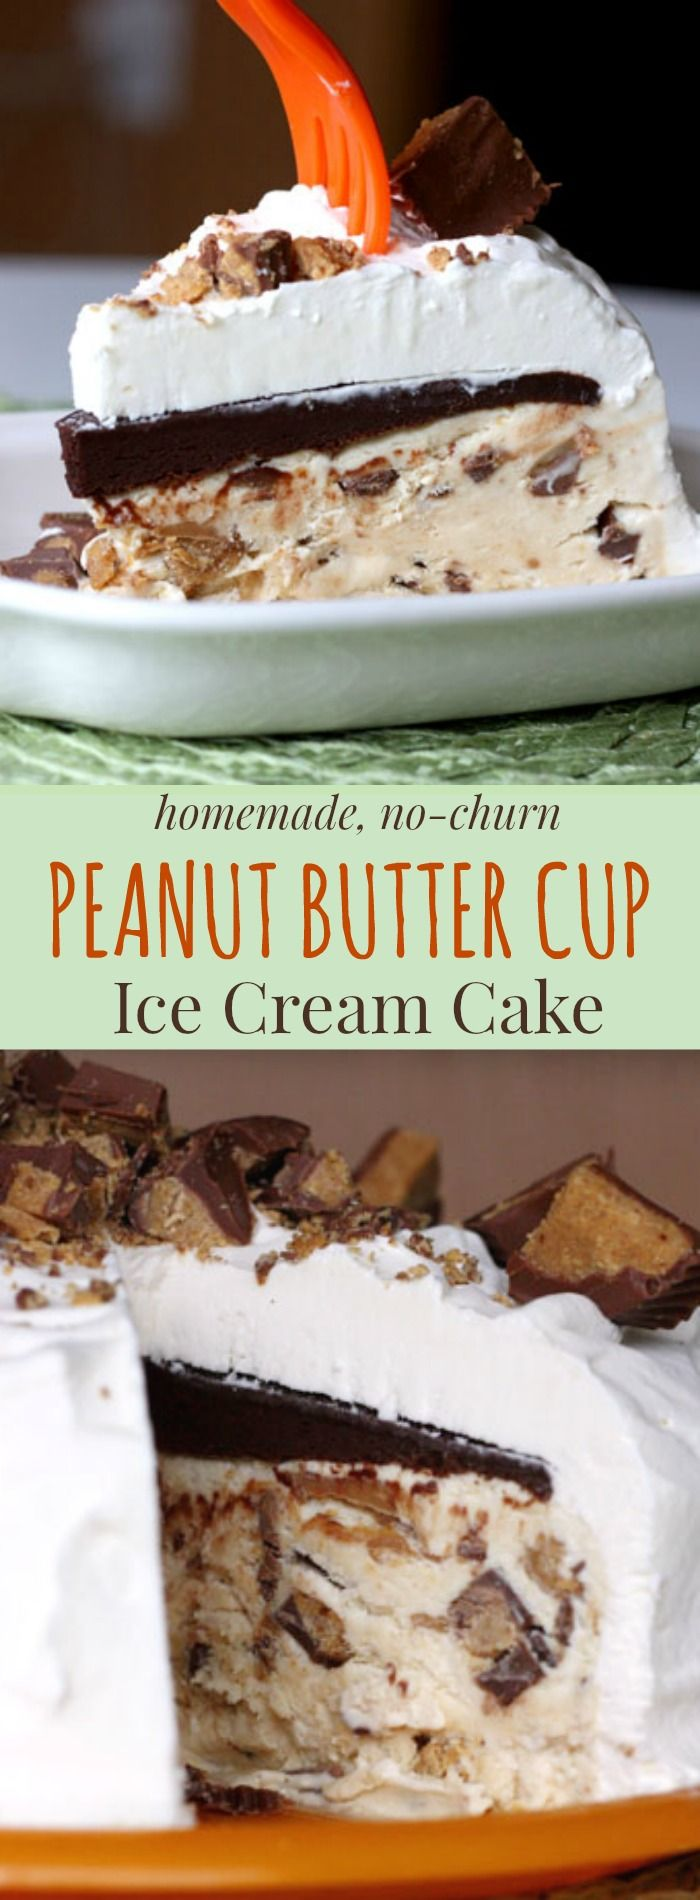 Homemade No-Churn Peanut Butter Cup Ice Cream Cake - this decadent dessert loaded with chocolate peanut butter is super easy with only seven ingredients! | cupcakesandkalechips.com | gluten free